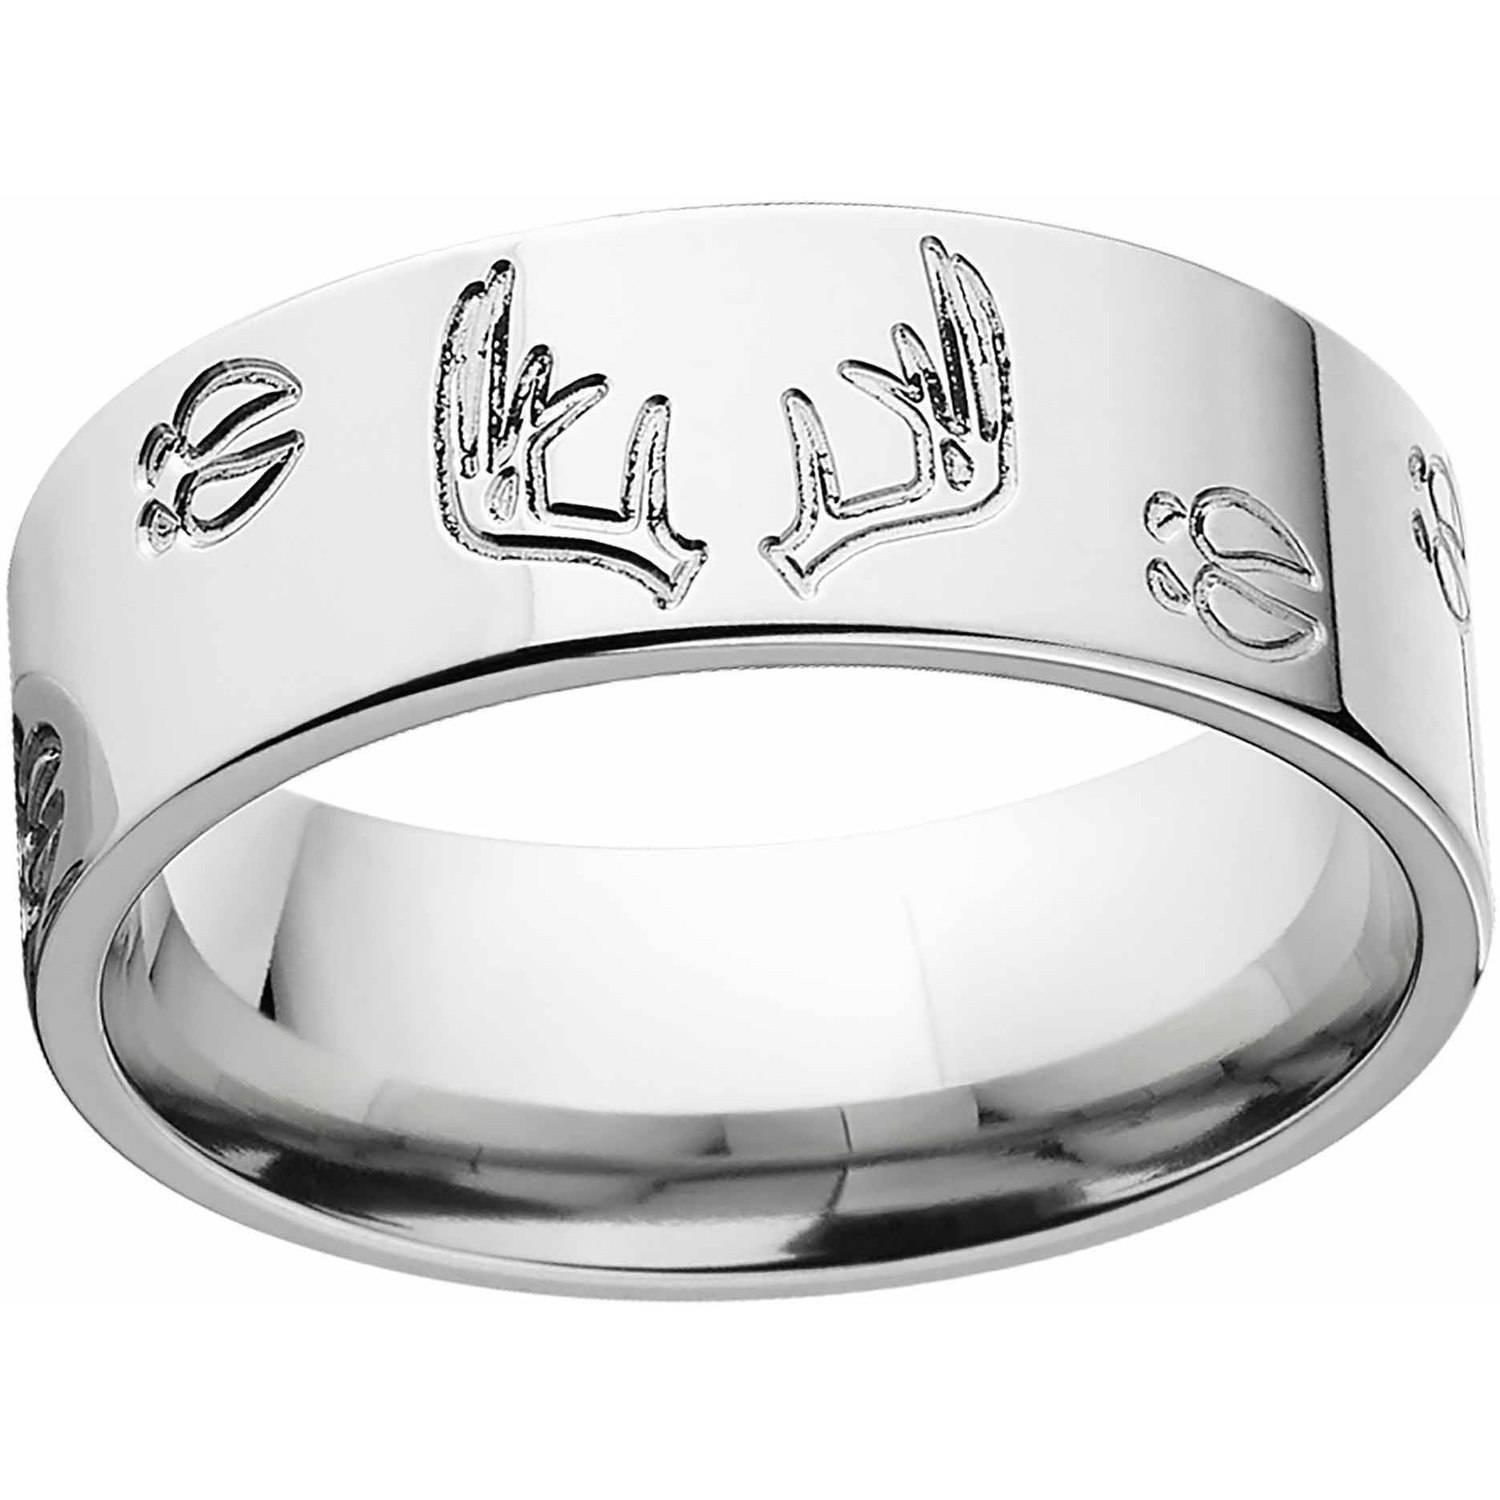 bands comfort band amazon dome resistant jewelry tarnish fit com sterling dp polish ring plain high wedding silver